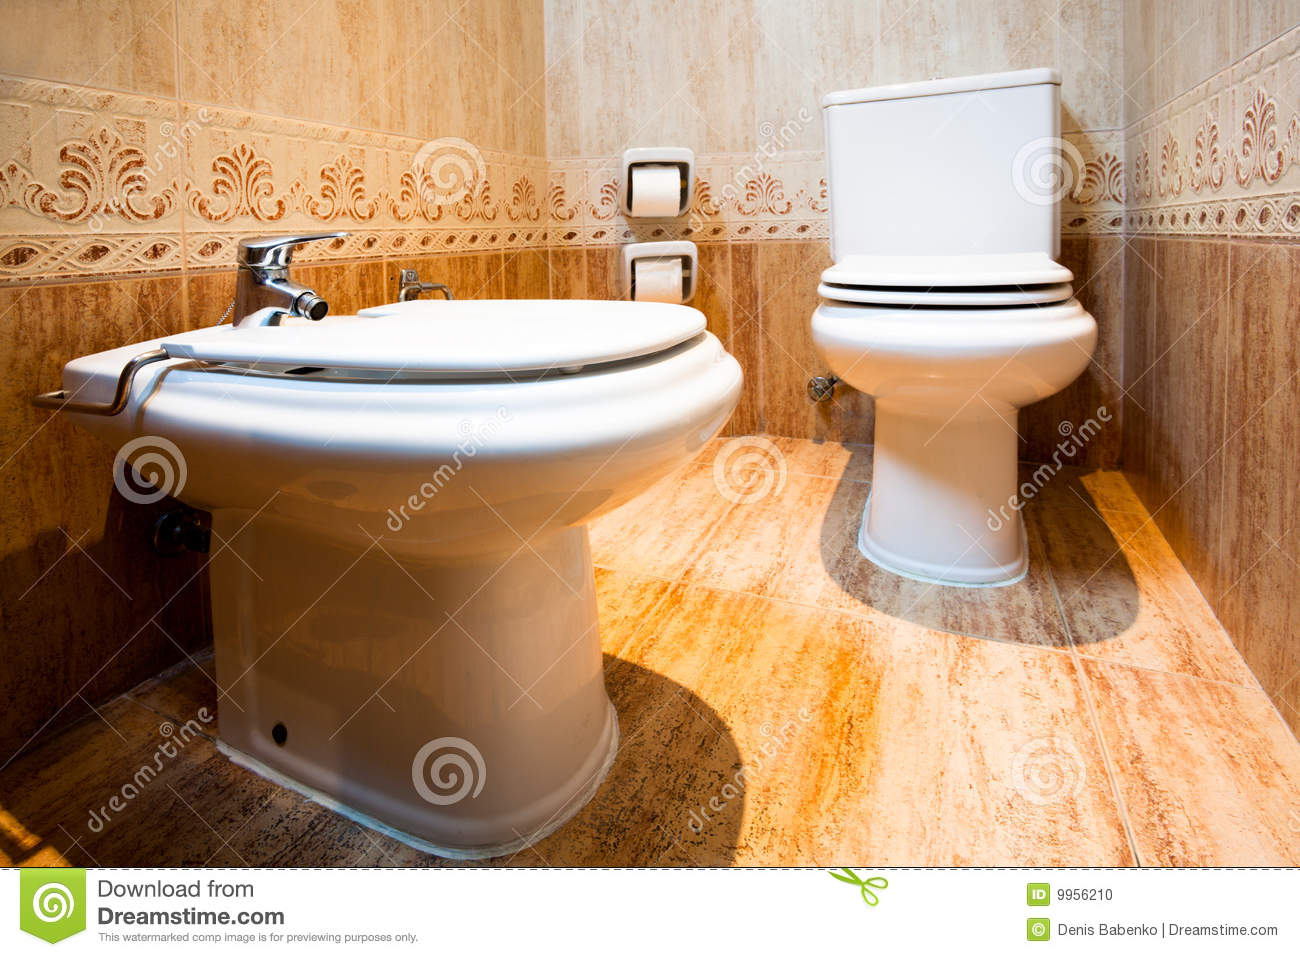 toilet and bidet in the modern bathroom of hotel stock photo image 9956210. Black Bedroom Furniture Sets. Home Design Ideas